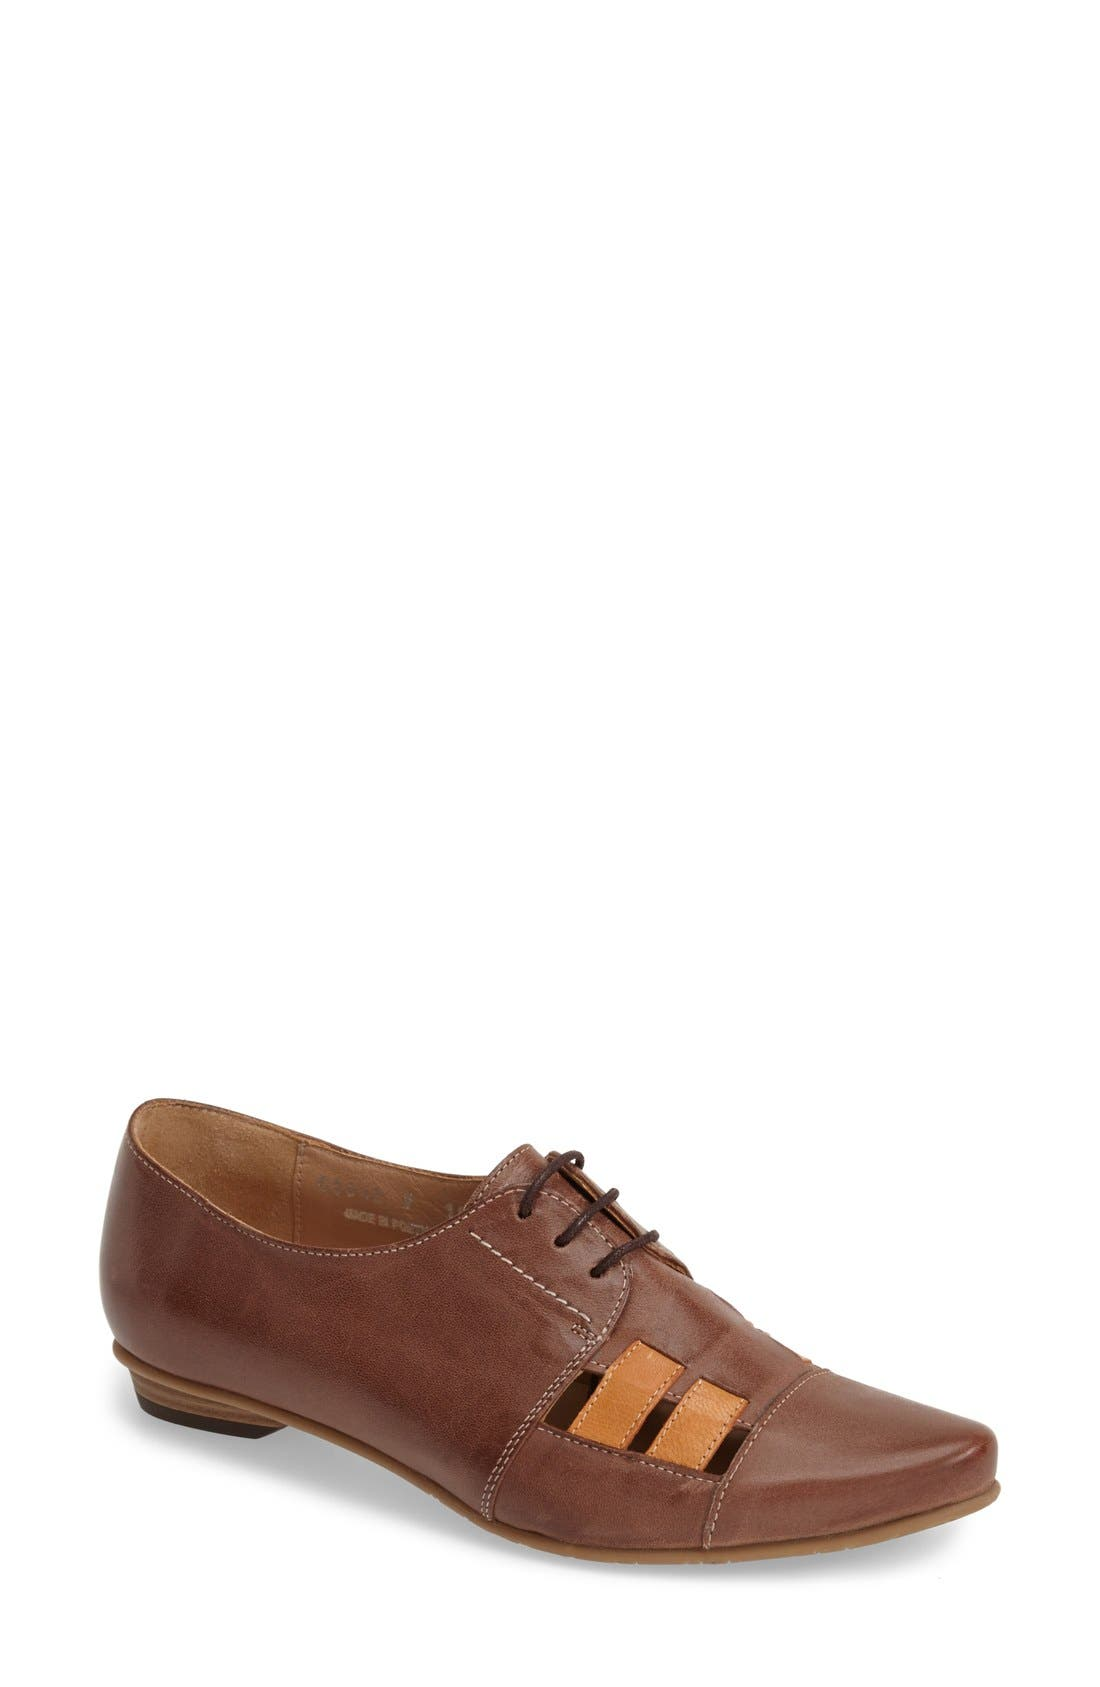 'V103' Leather Flat,                             Main thumbnail 1, color,                             BROWN